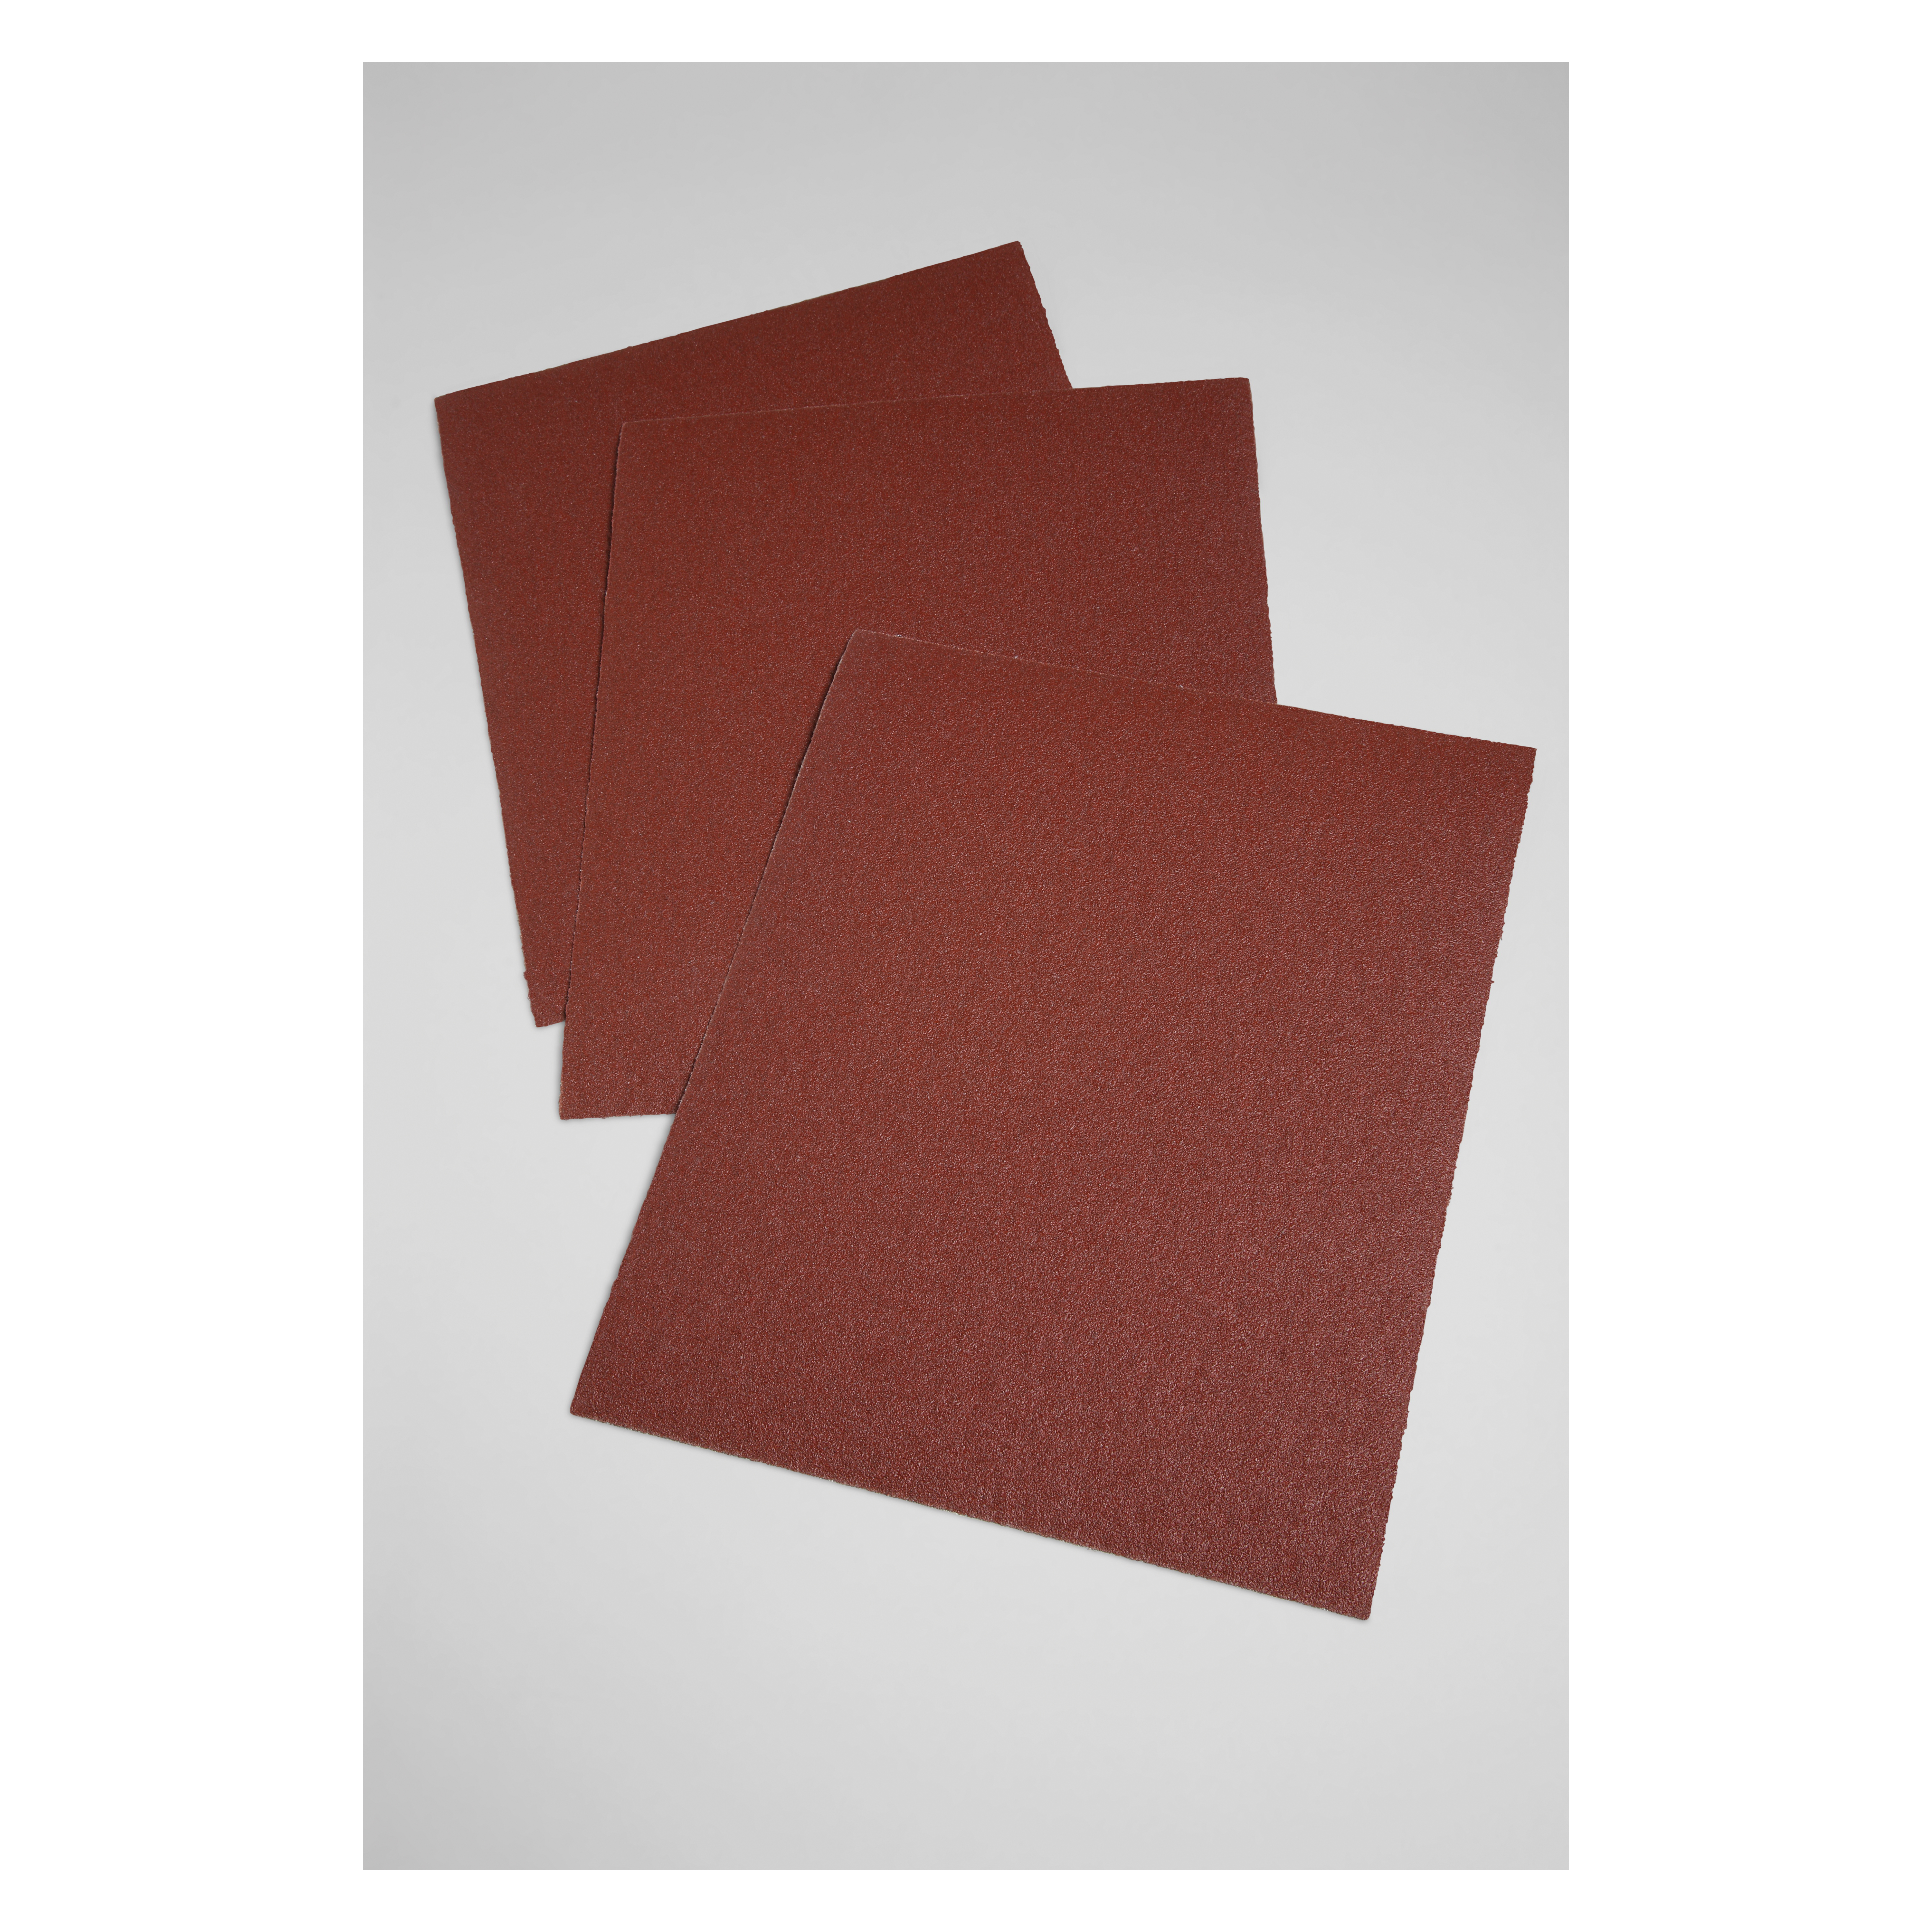 3M™ 051115-19773 Utility Coated Abrasive Sheet, 11 in L x 9 in W, P60 Grit, Medium Grade, Aluminum Oxide Abrasive, Cloth Backing